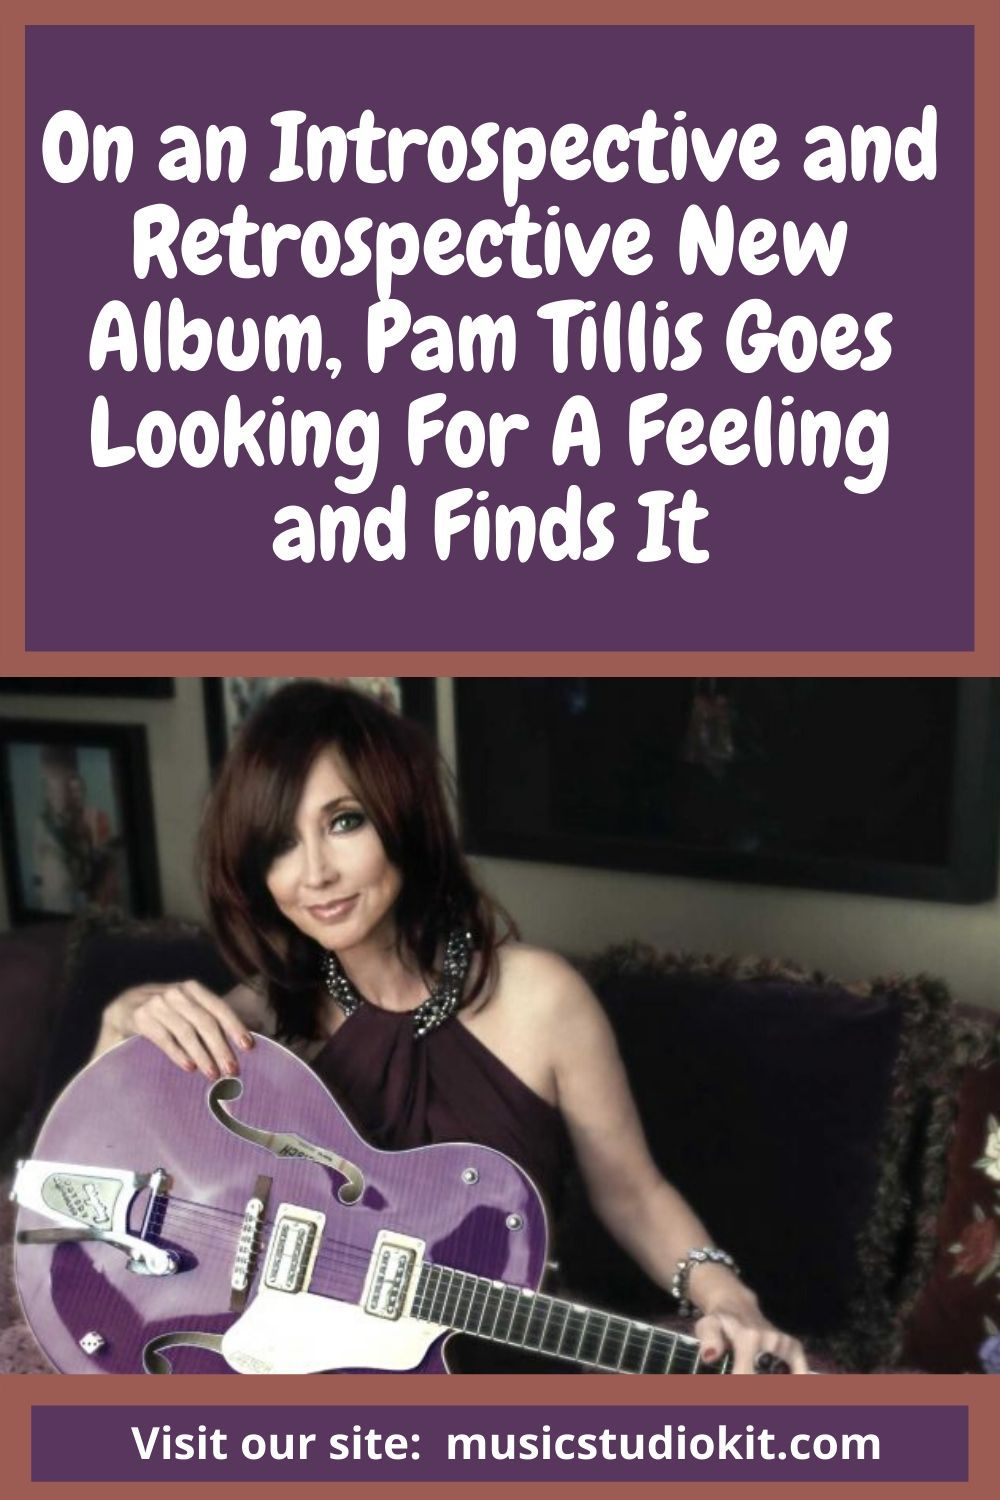 On an Introspective and Retrospective New Album, Pam